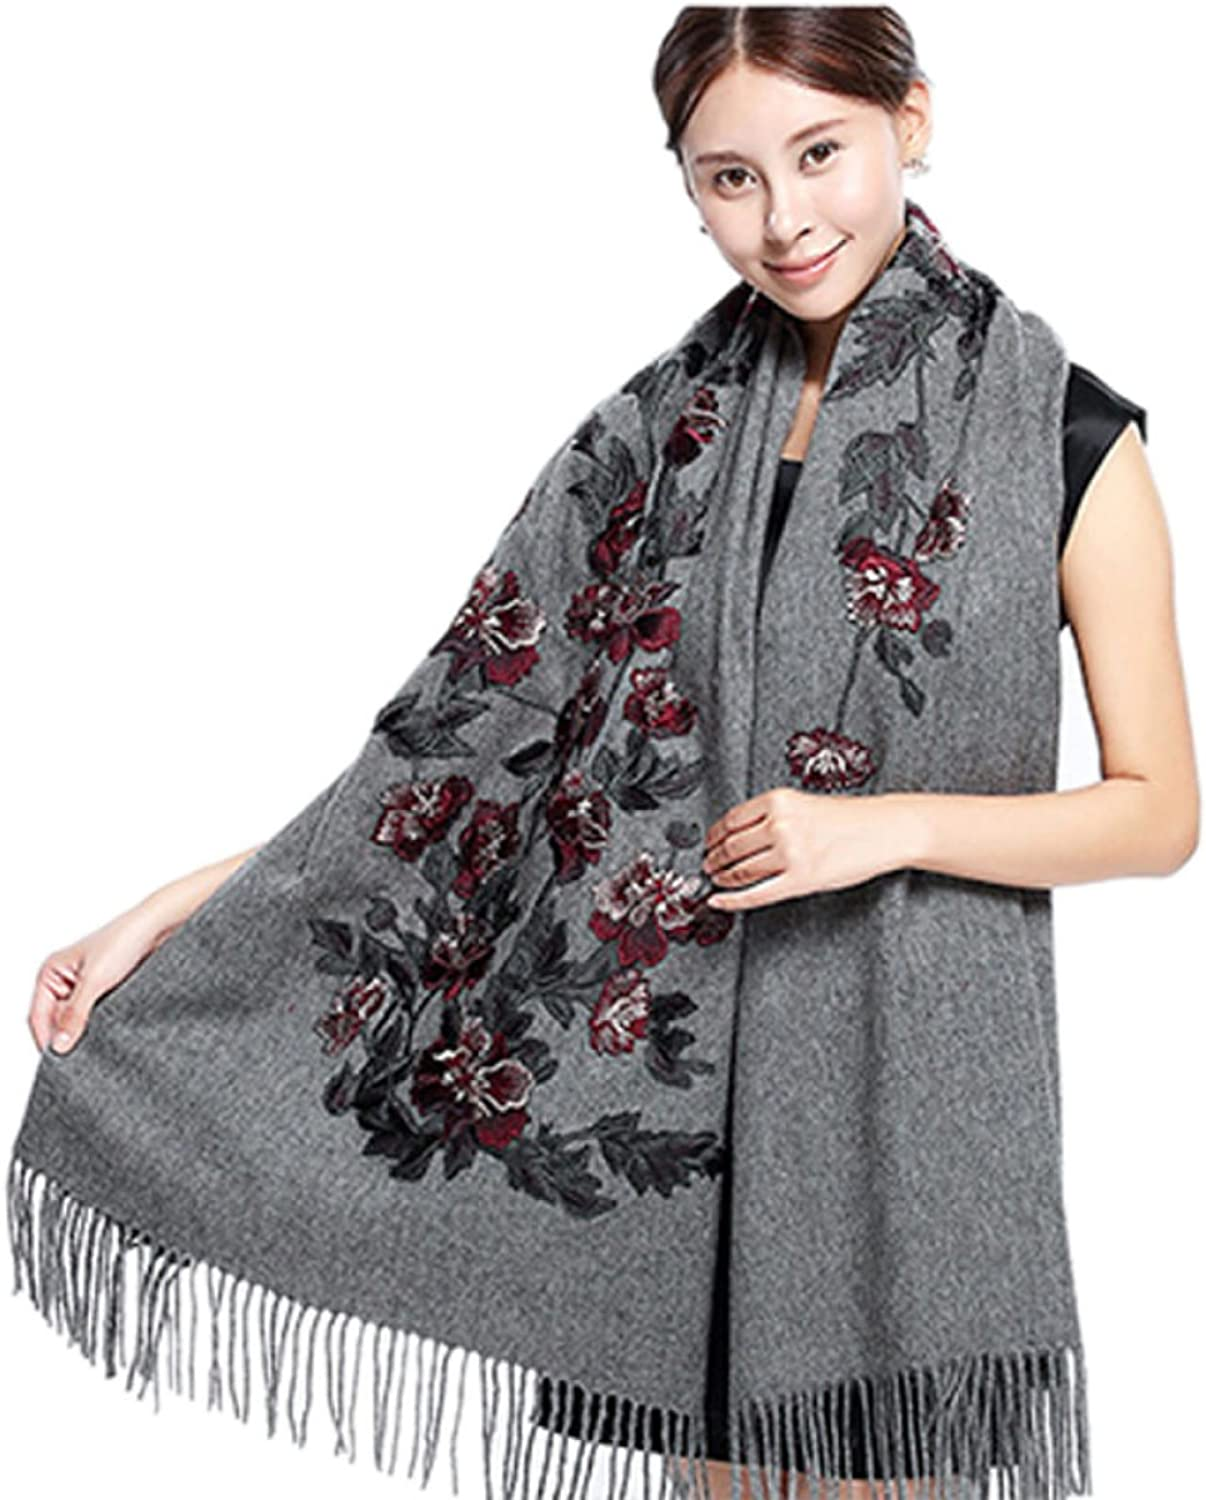 Ink Danqing Highgrade Woolen Thickening Solid color Embroidery Scarves Shawl 70X200CM3 Kinds Of colors,GreyOneSize